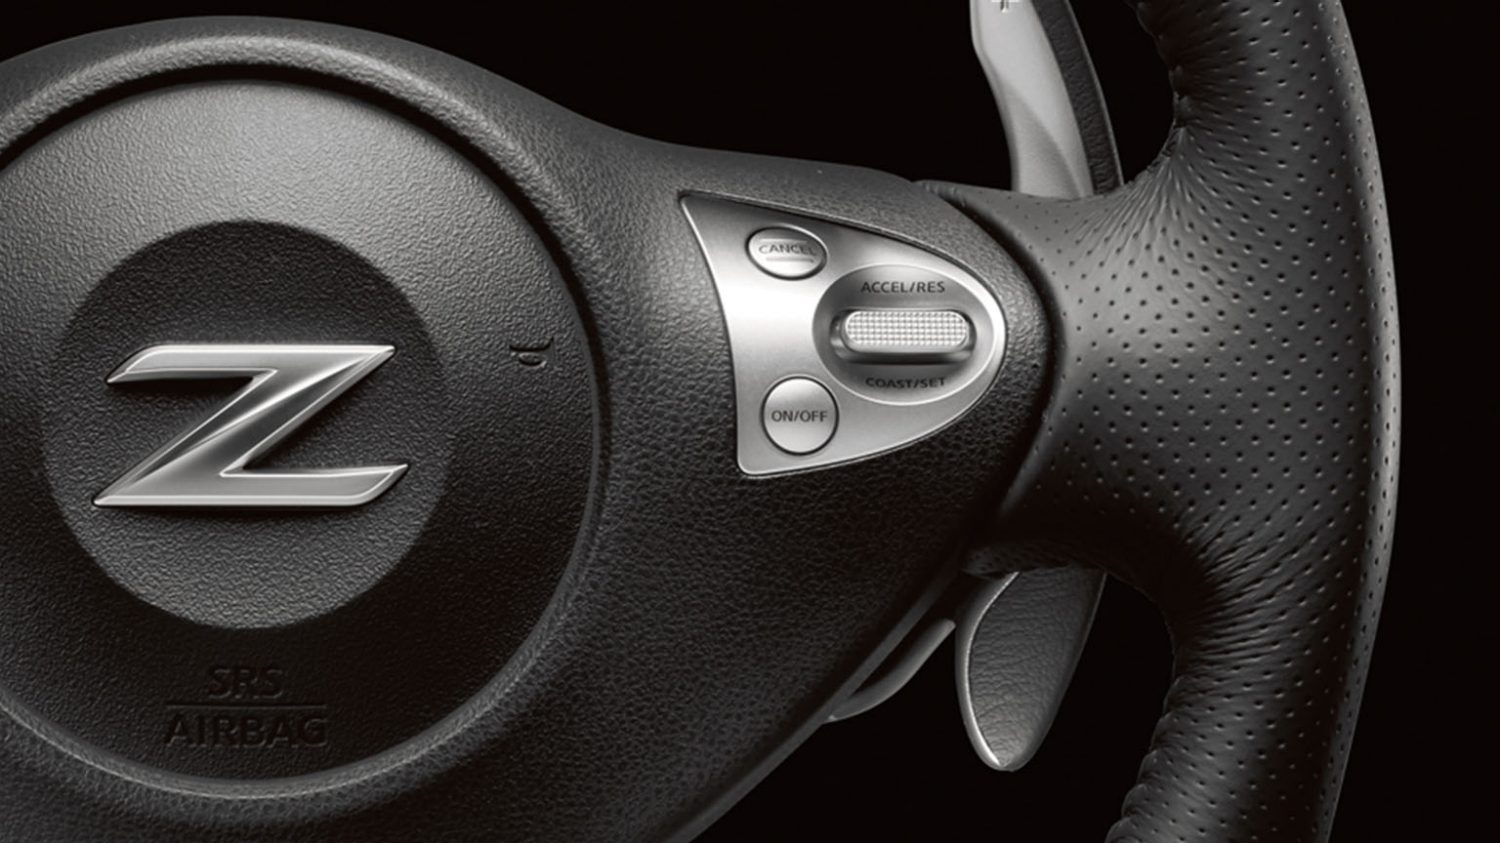 Steering Wheel-mounted Paddle Shifter